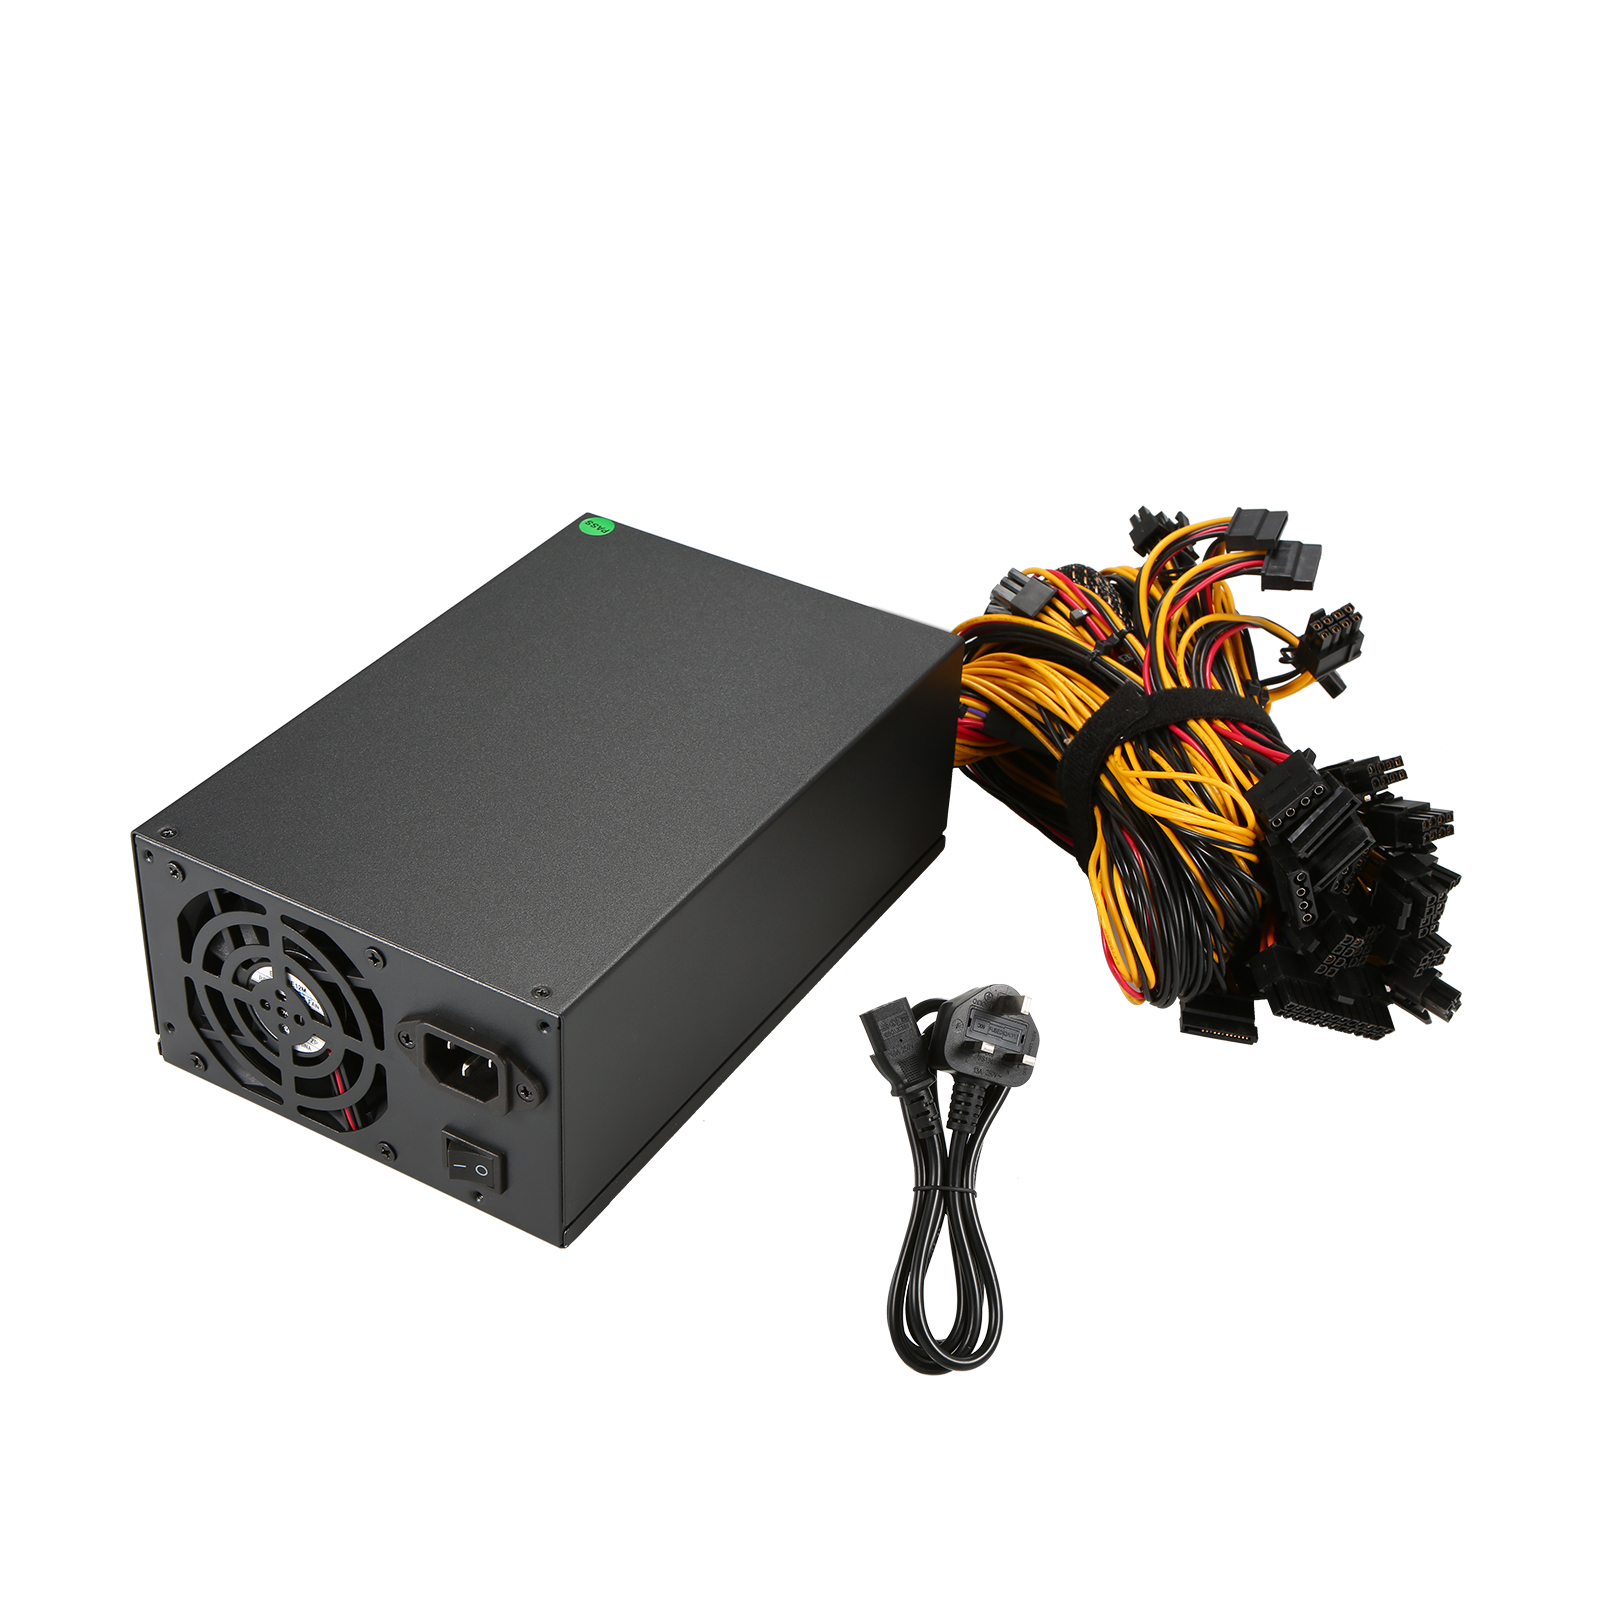 2000W Over 90% Efficiency ATX12V V2.31 ETH Coin Mining Miner Power Supply Active PFC Power Supply for 8 graphics cards bitcoin все цены